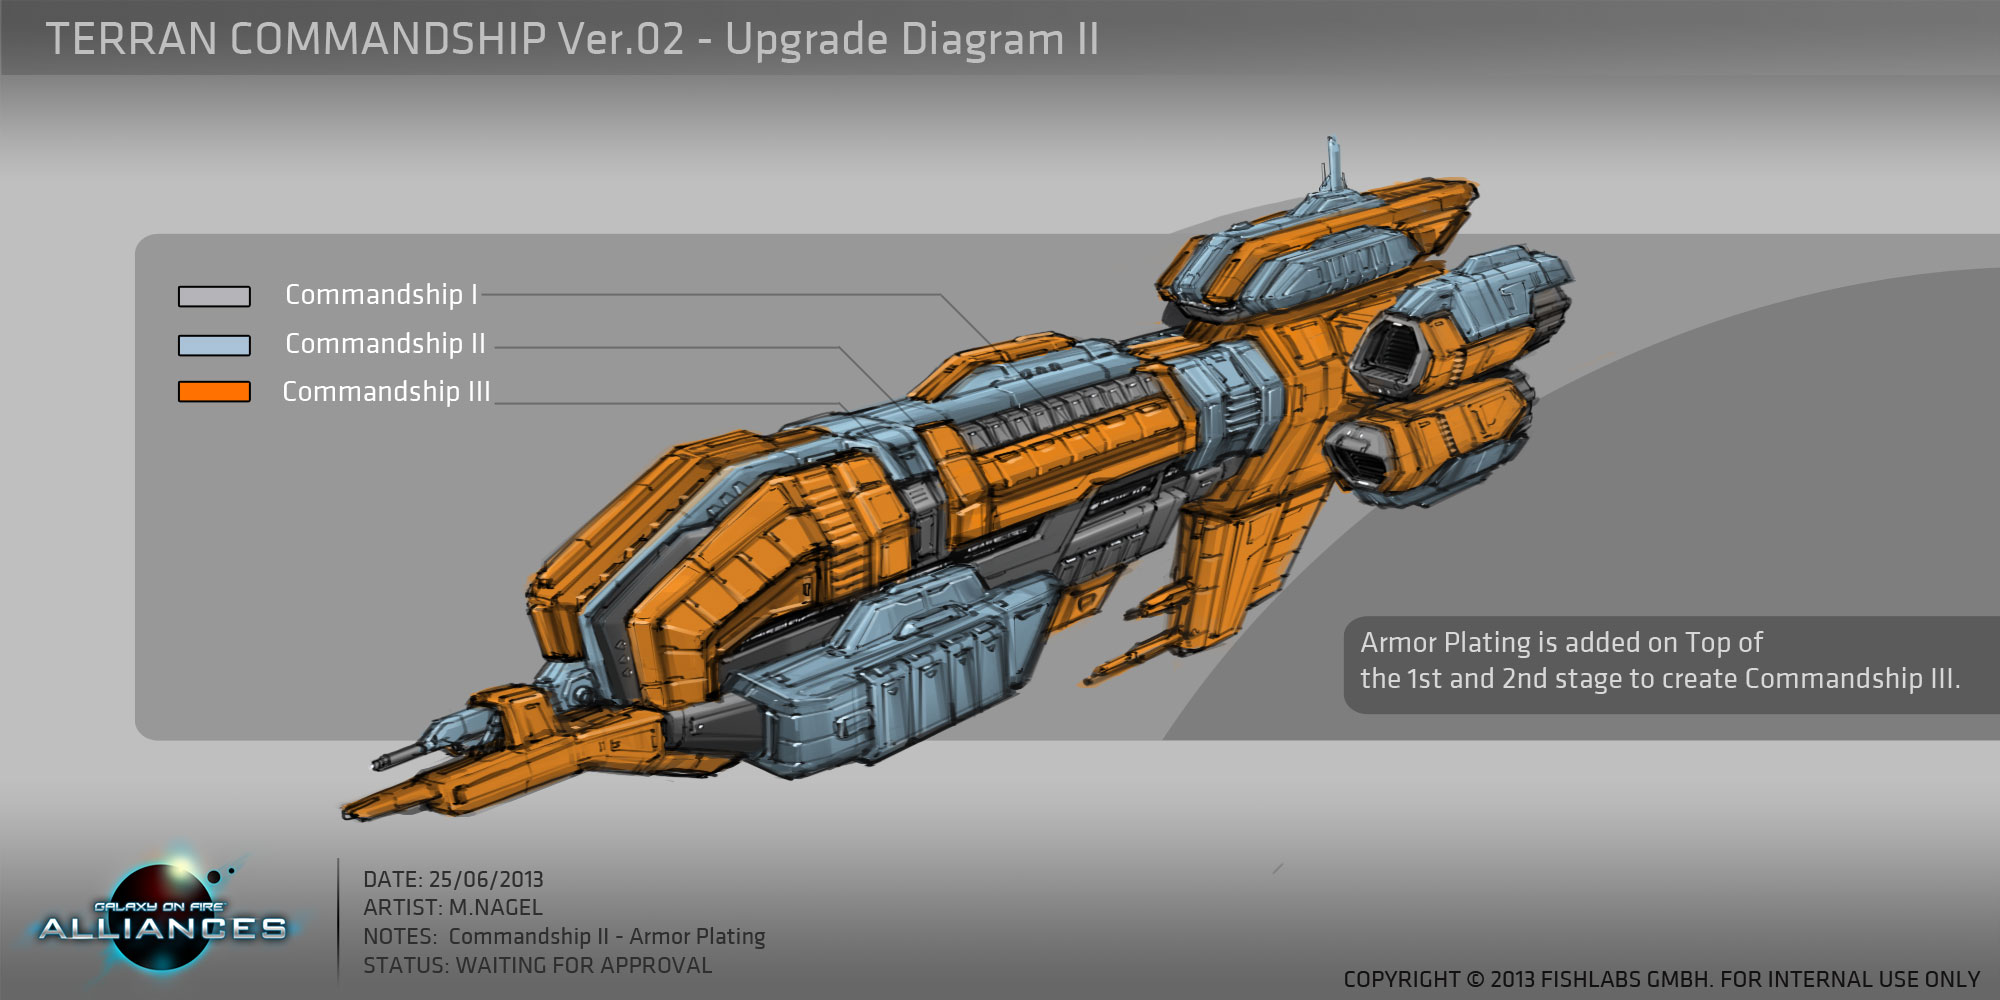 Fishlabs-galaxy-on-fire-alliances-concept-artwork-TERRAN-CARRIER-02